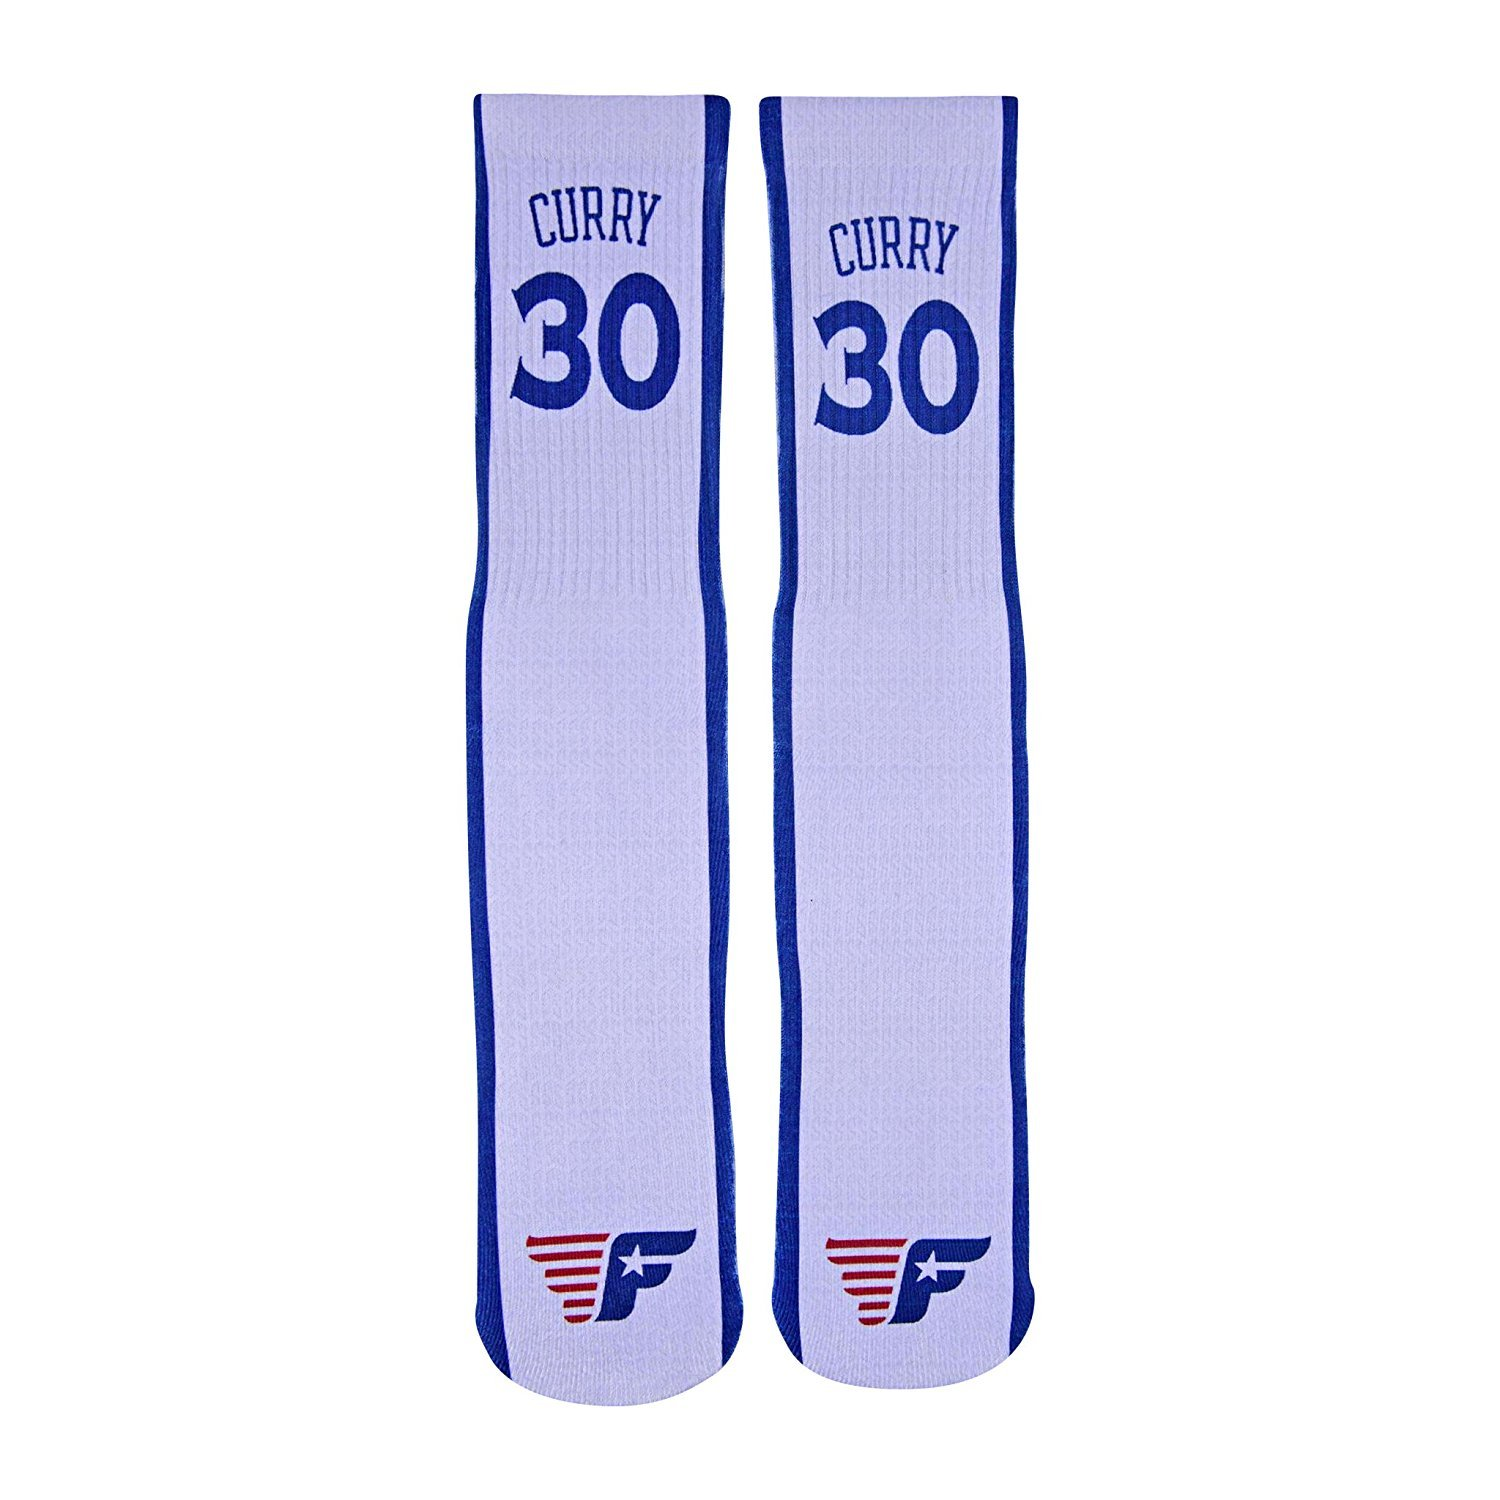 41b651c9b121 Forever Fanatics Golden State Steph Curry  30 Away Basketball Crew Socks ✓.